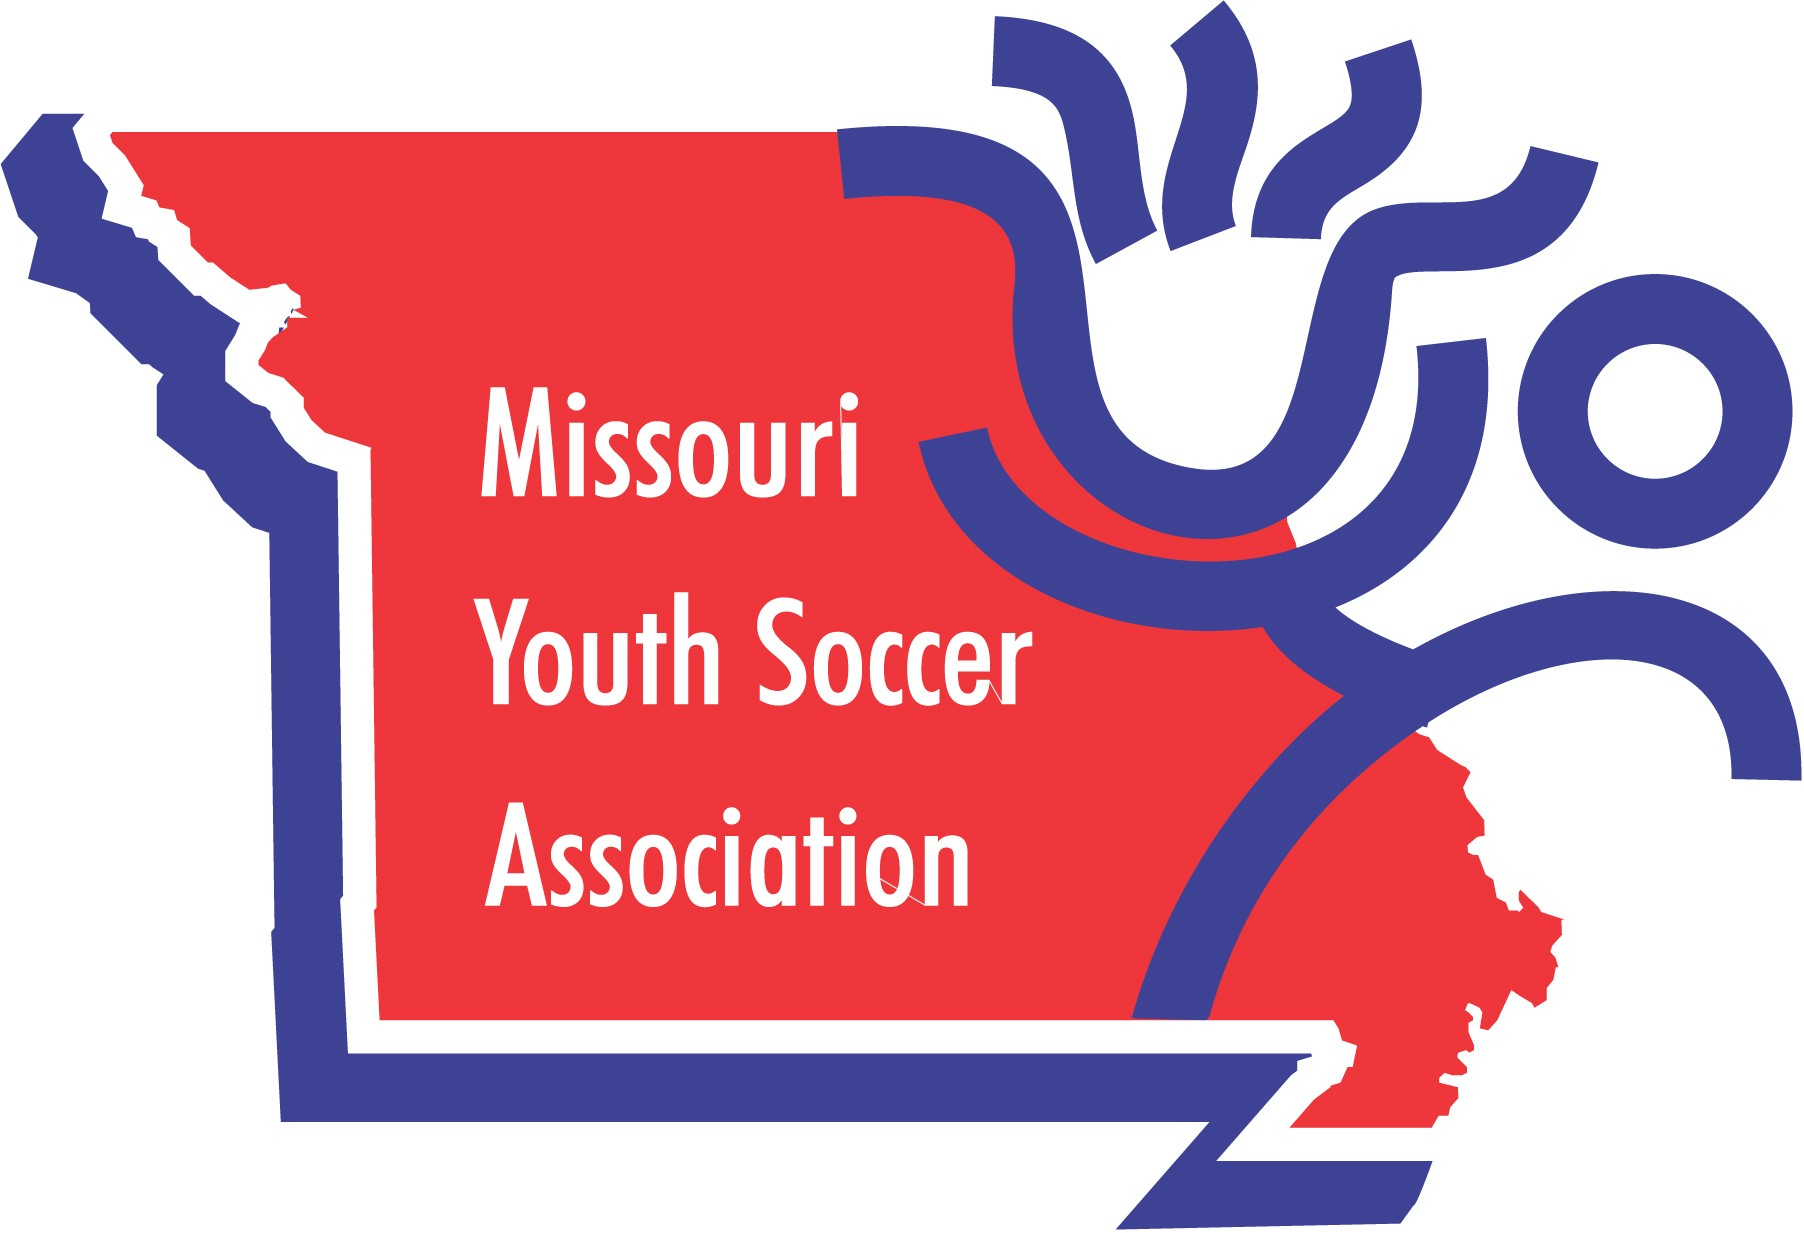 Missouri Youth Soccer Association Annual Meeting Wrap Up